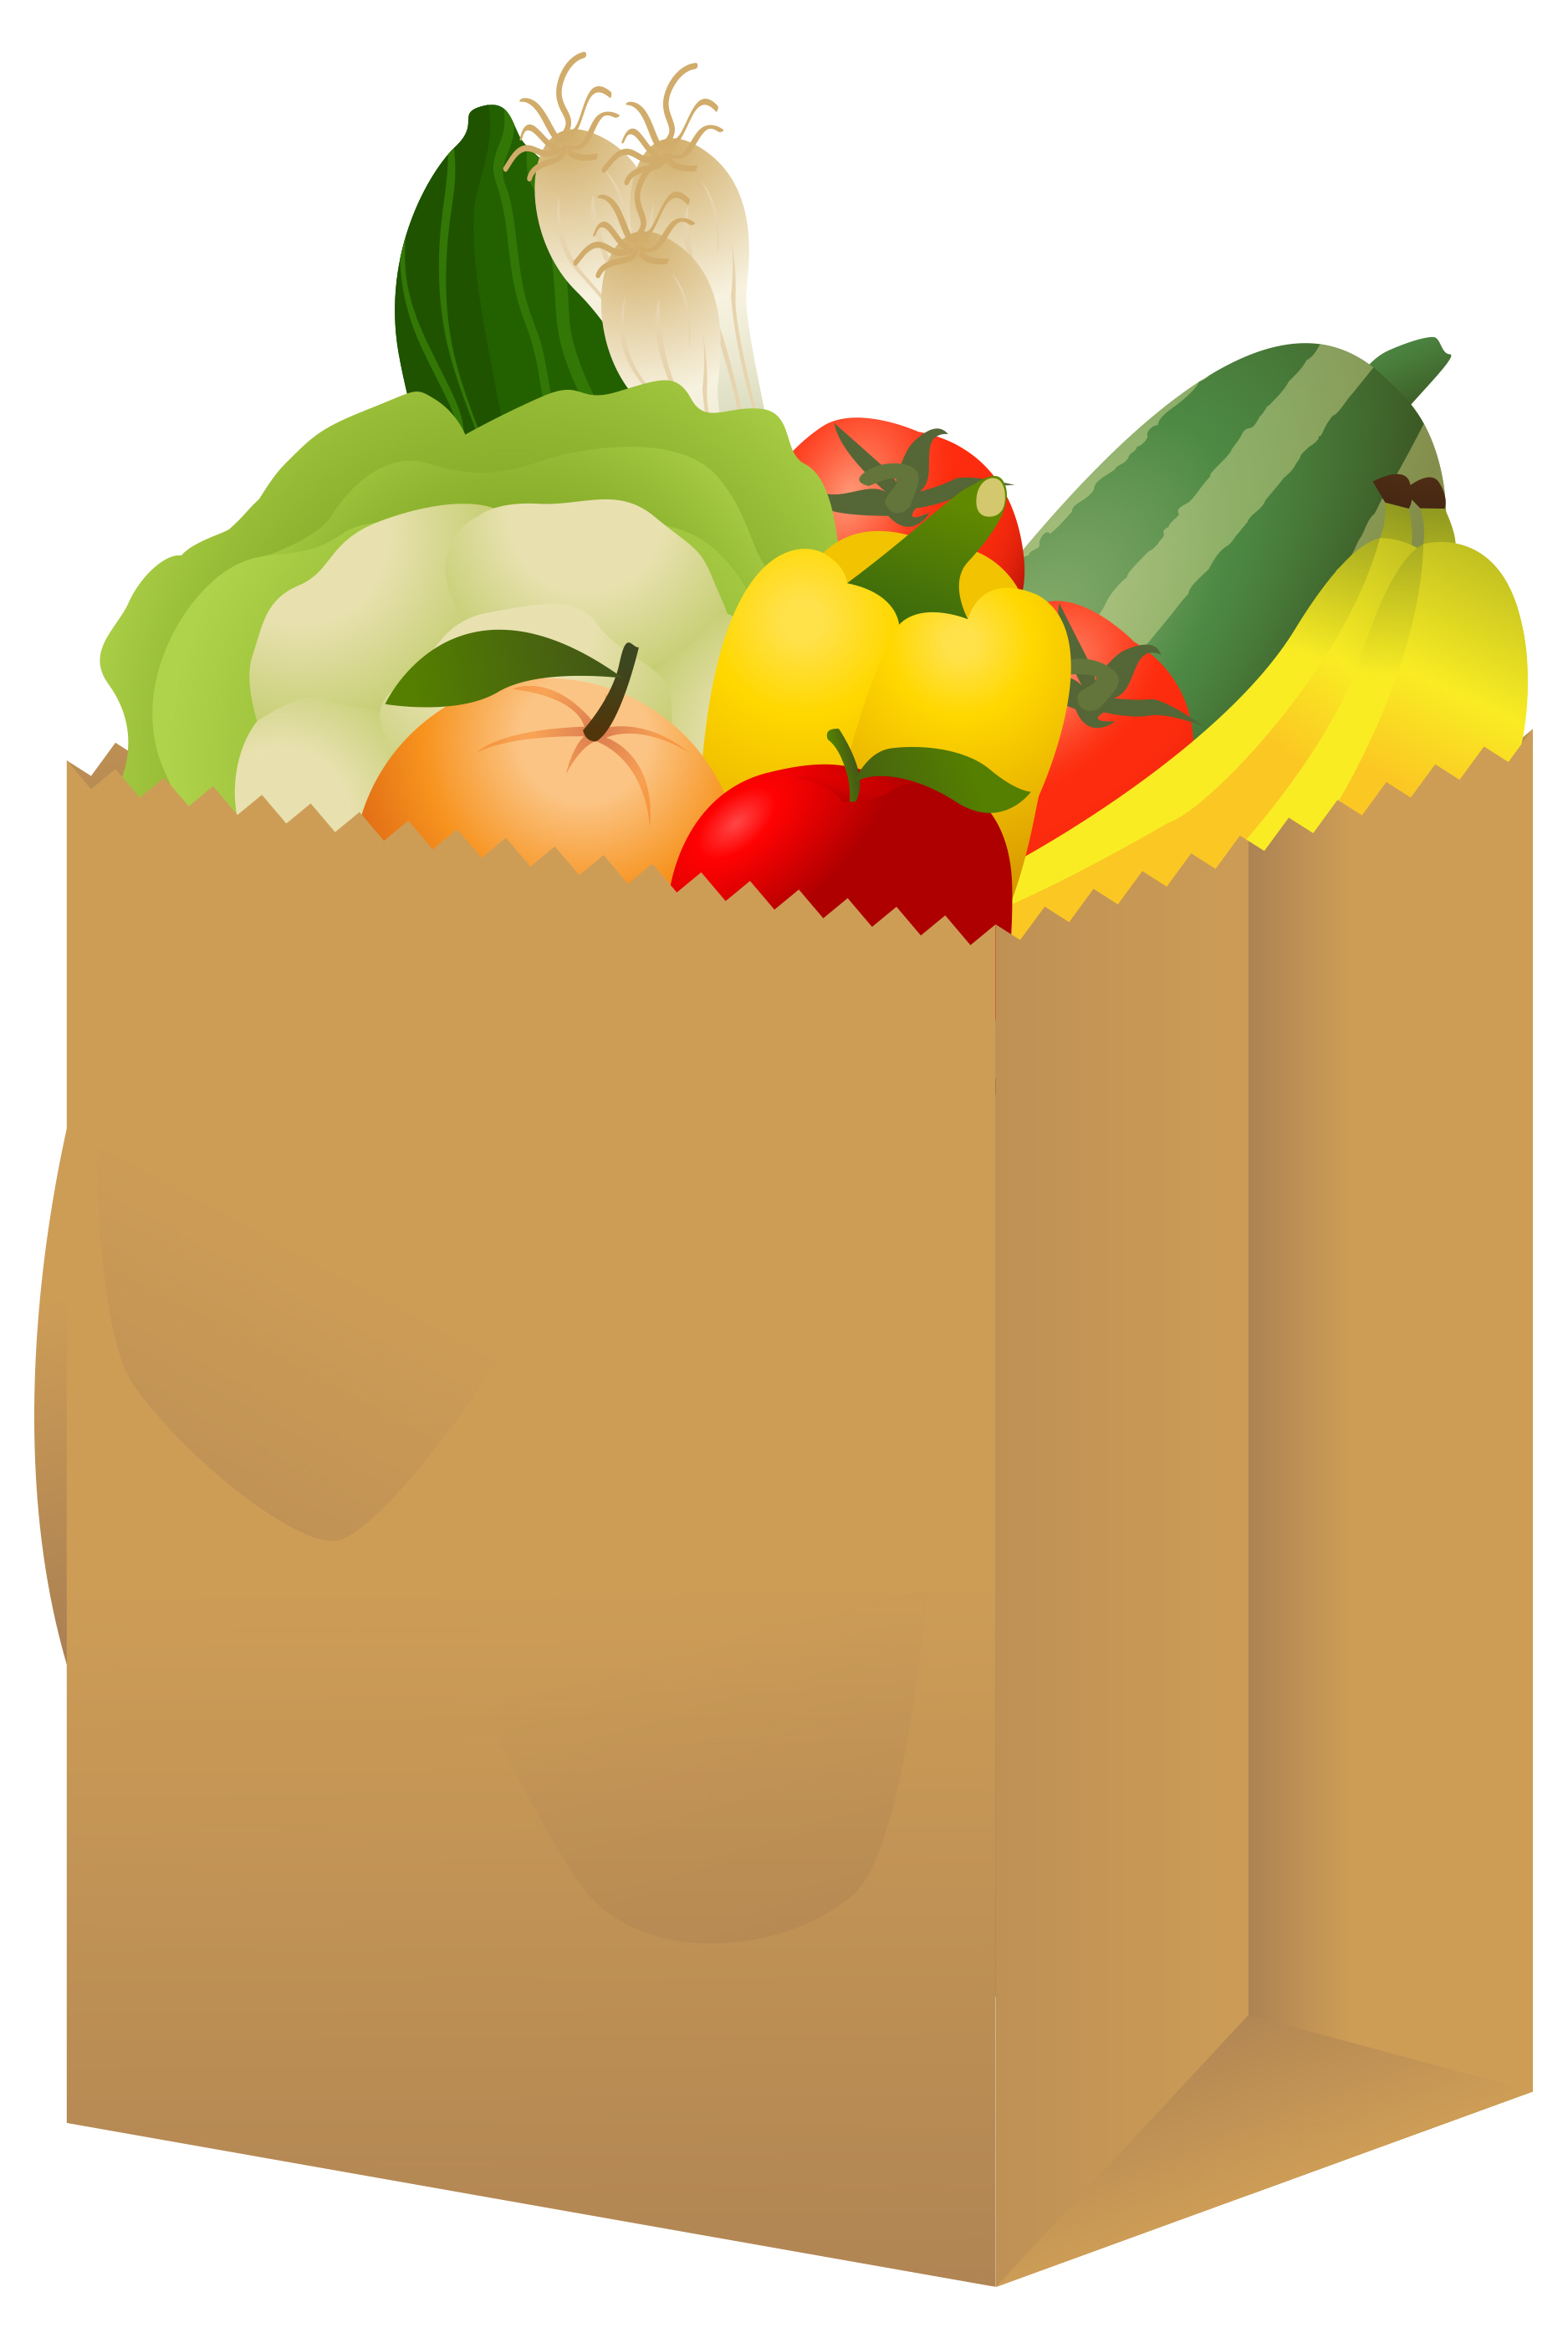 Market clipart nutrition 49 bag grocery cliparts bags